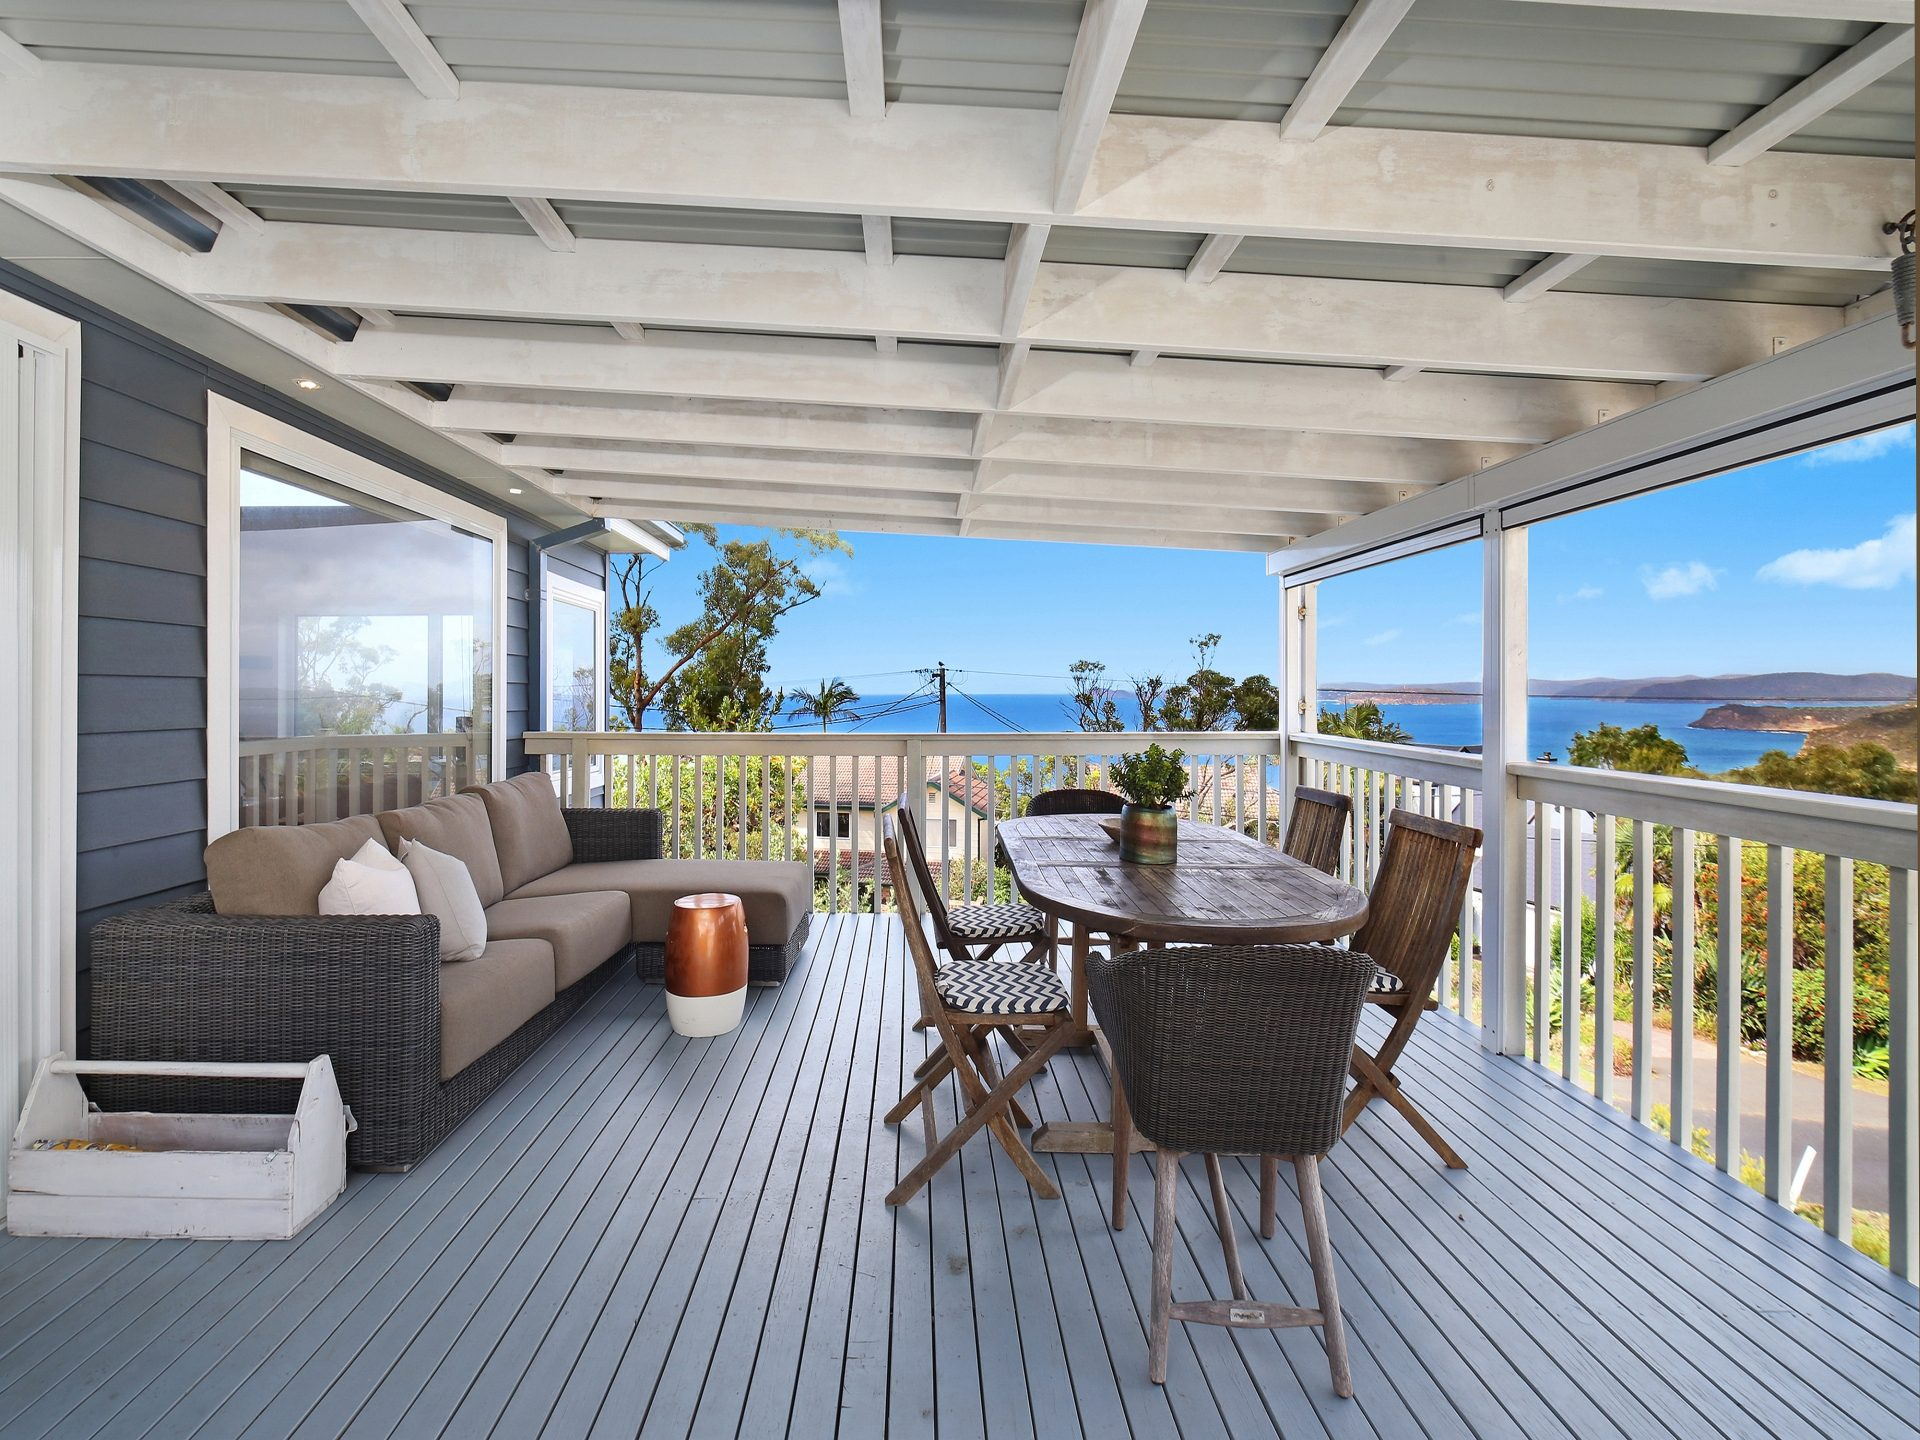 Coastal Ambiance with Views  - Linen included